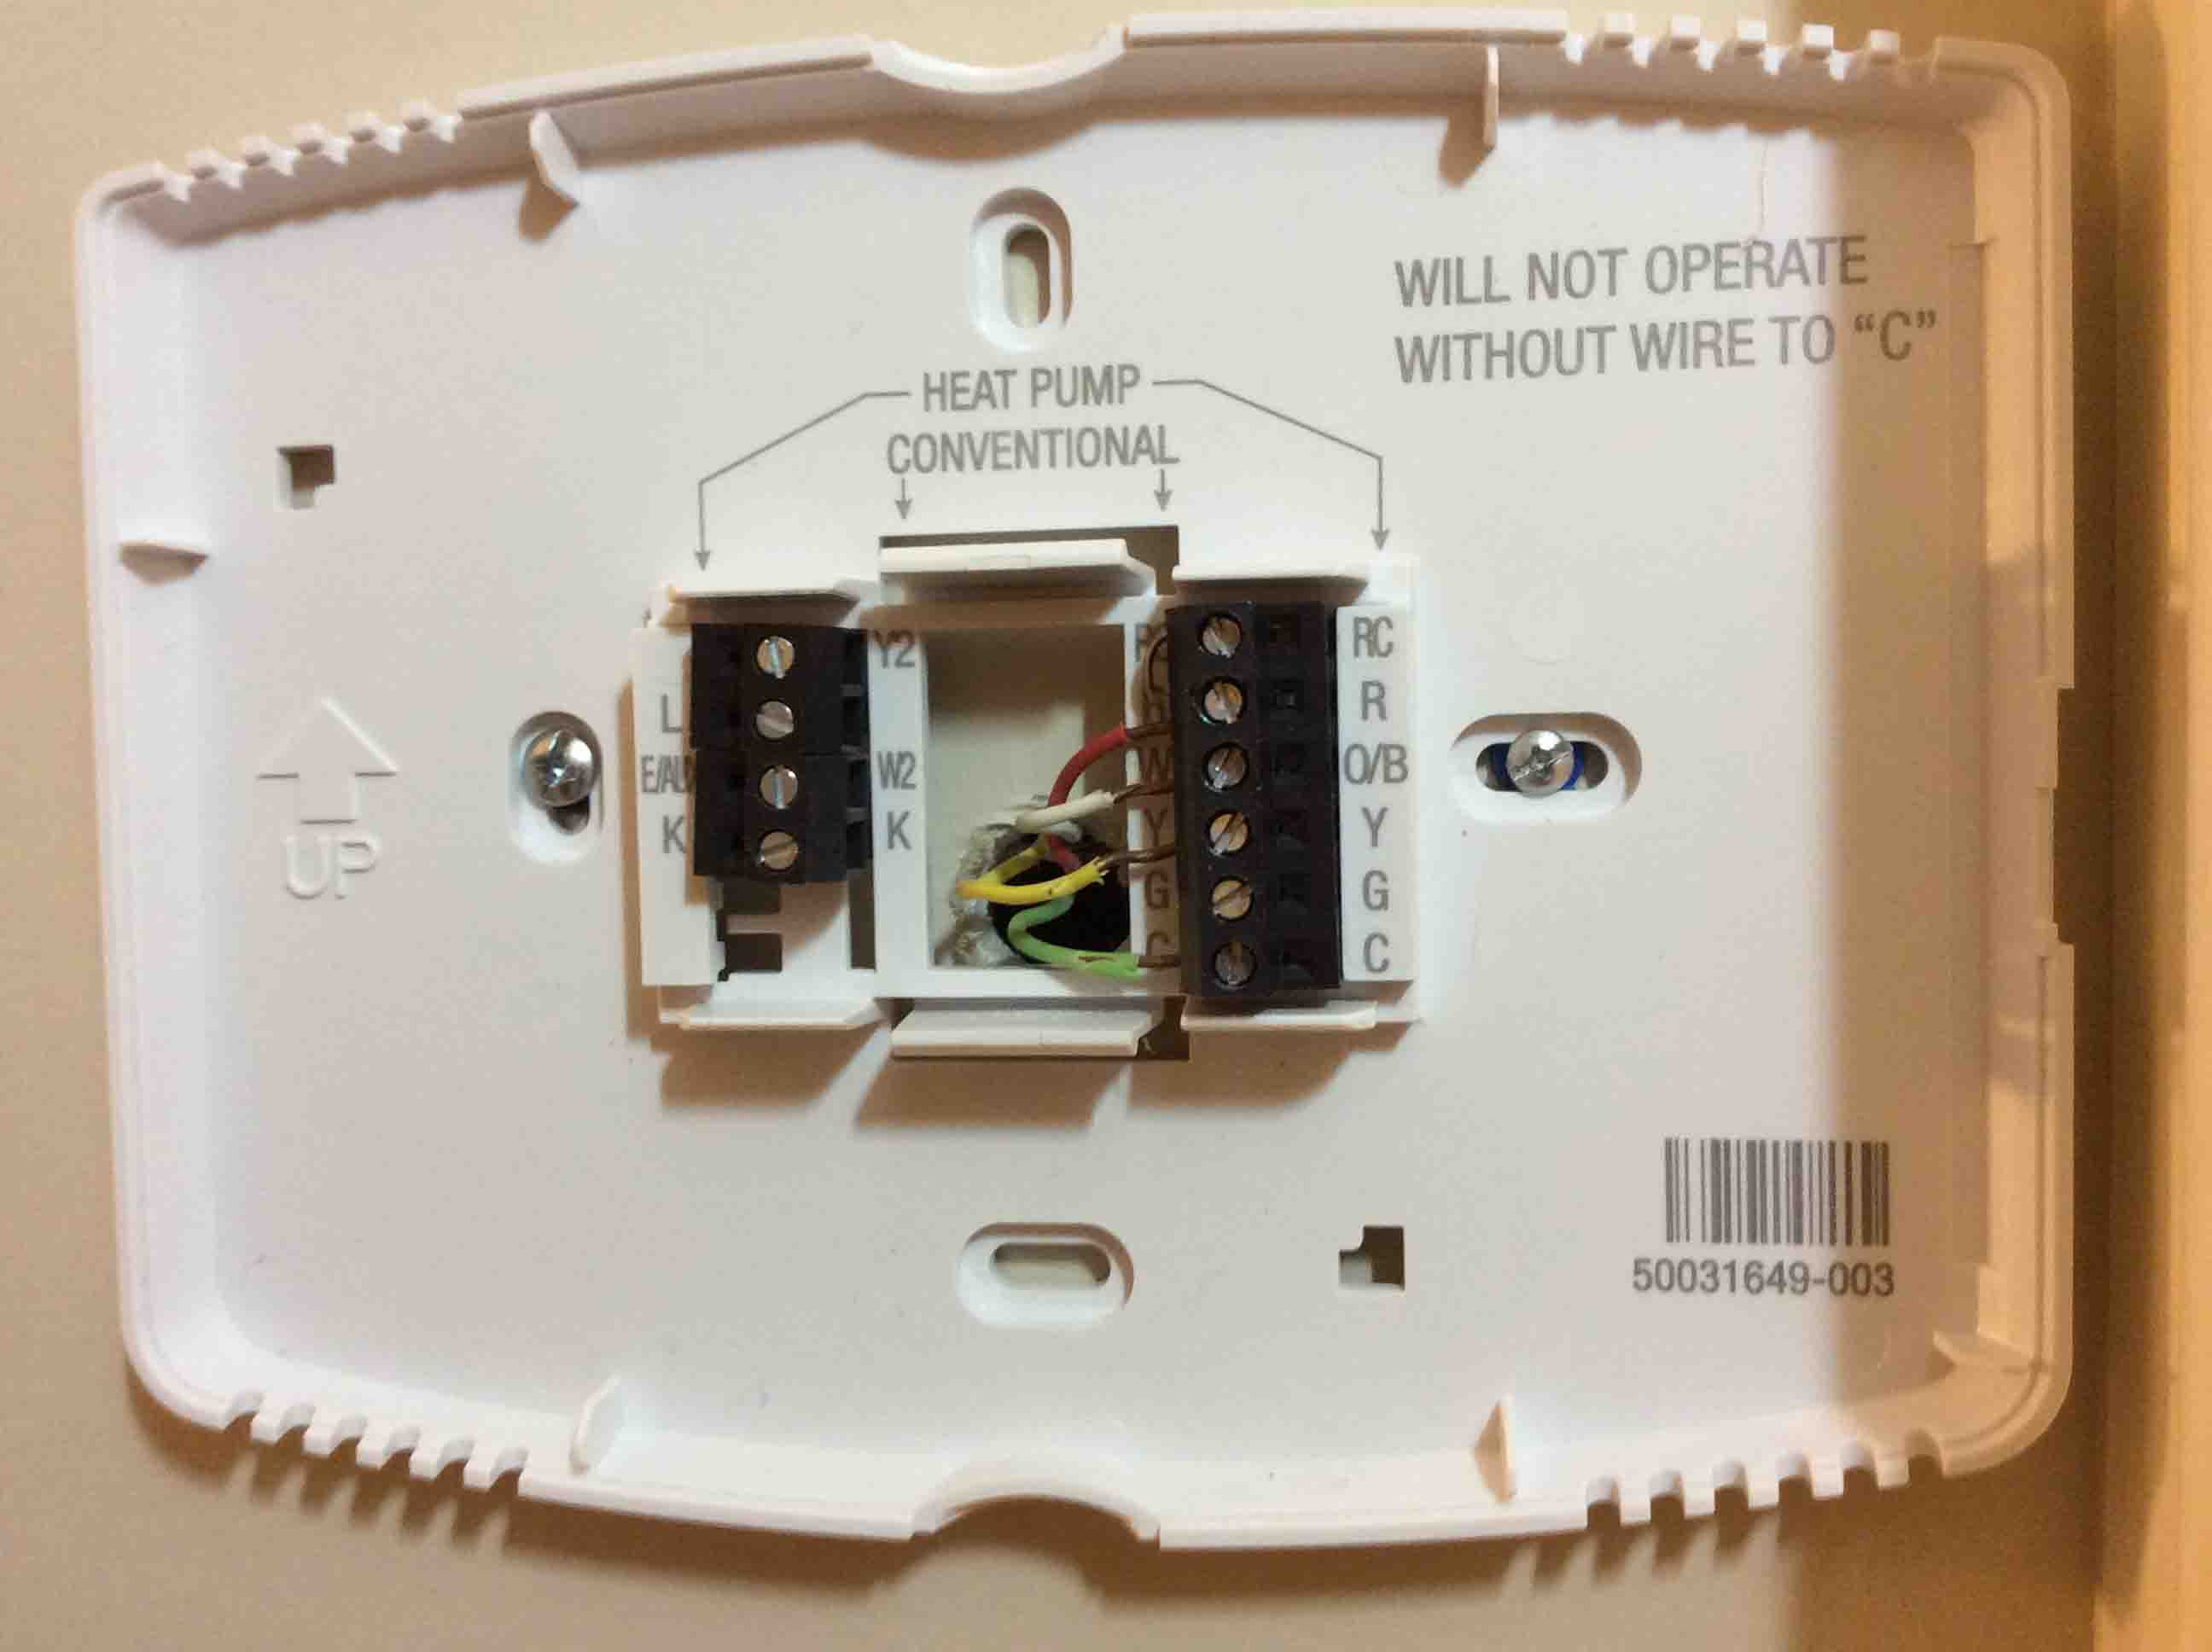 honeywell smart thermostat wiring instructions rth9580wf tom s tek rh tomstek us honeywell wifi thermostat wiring diagrams honeywell wifi thermostat wiring